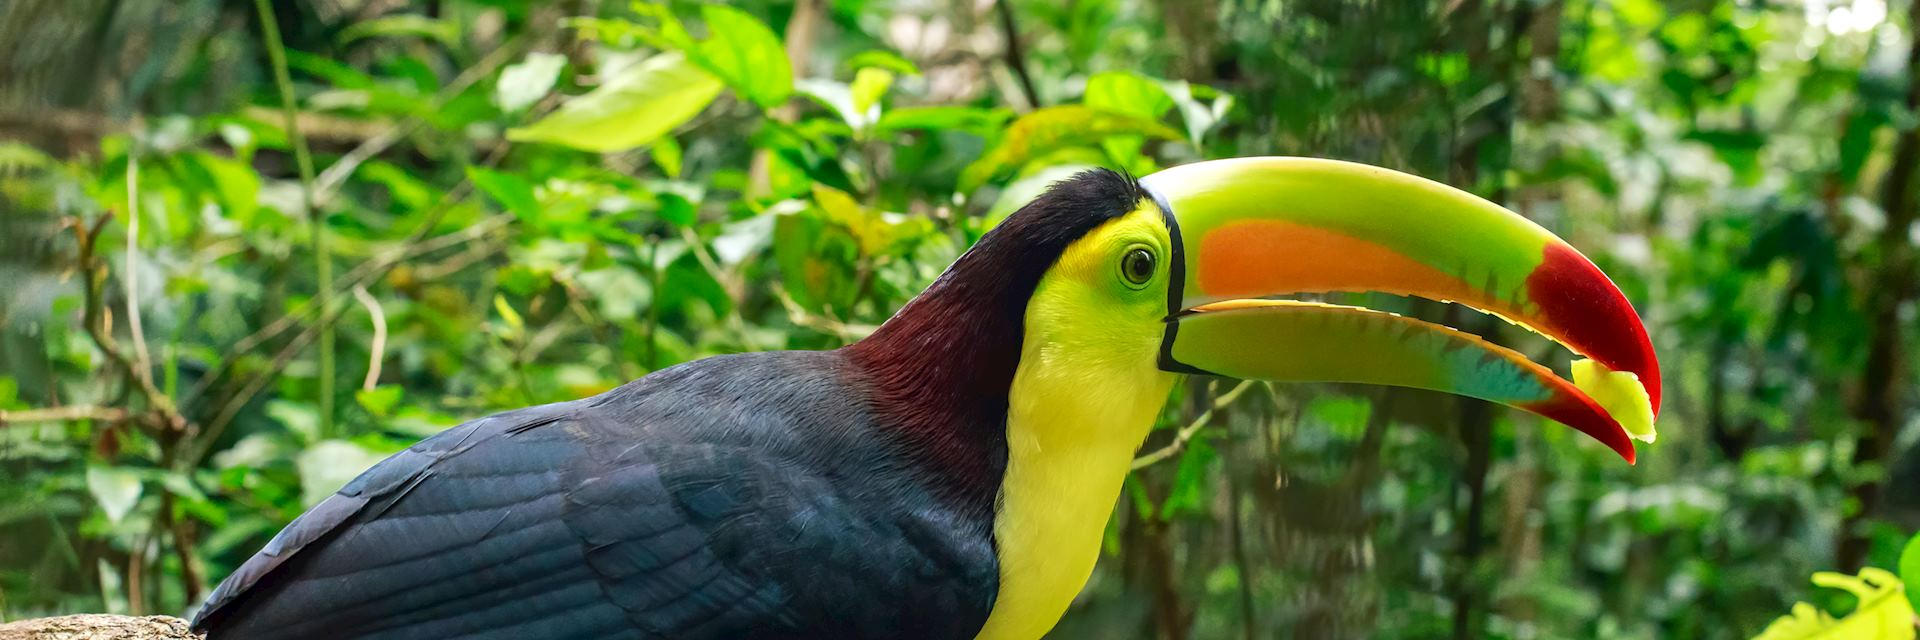 Toucan in Belize jungle